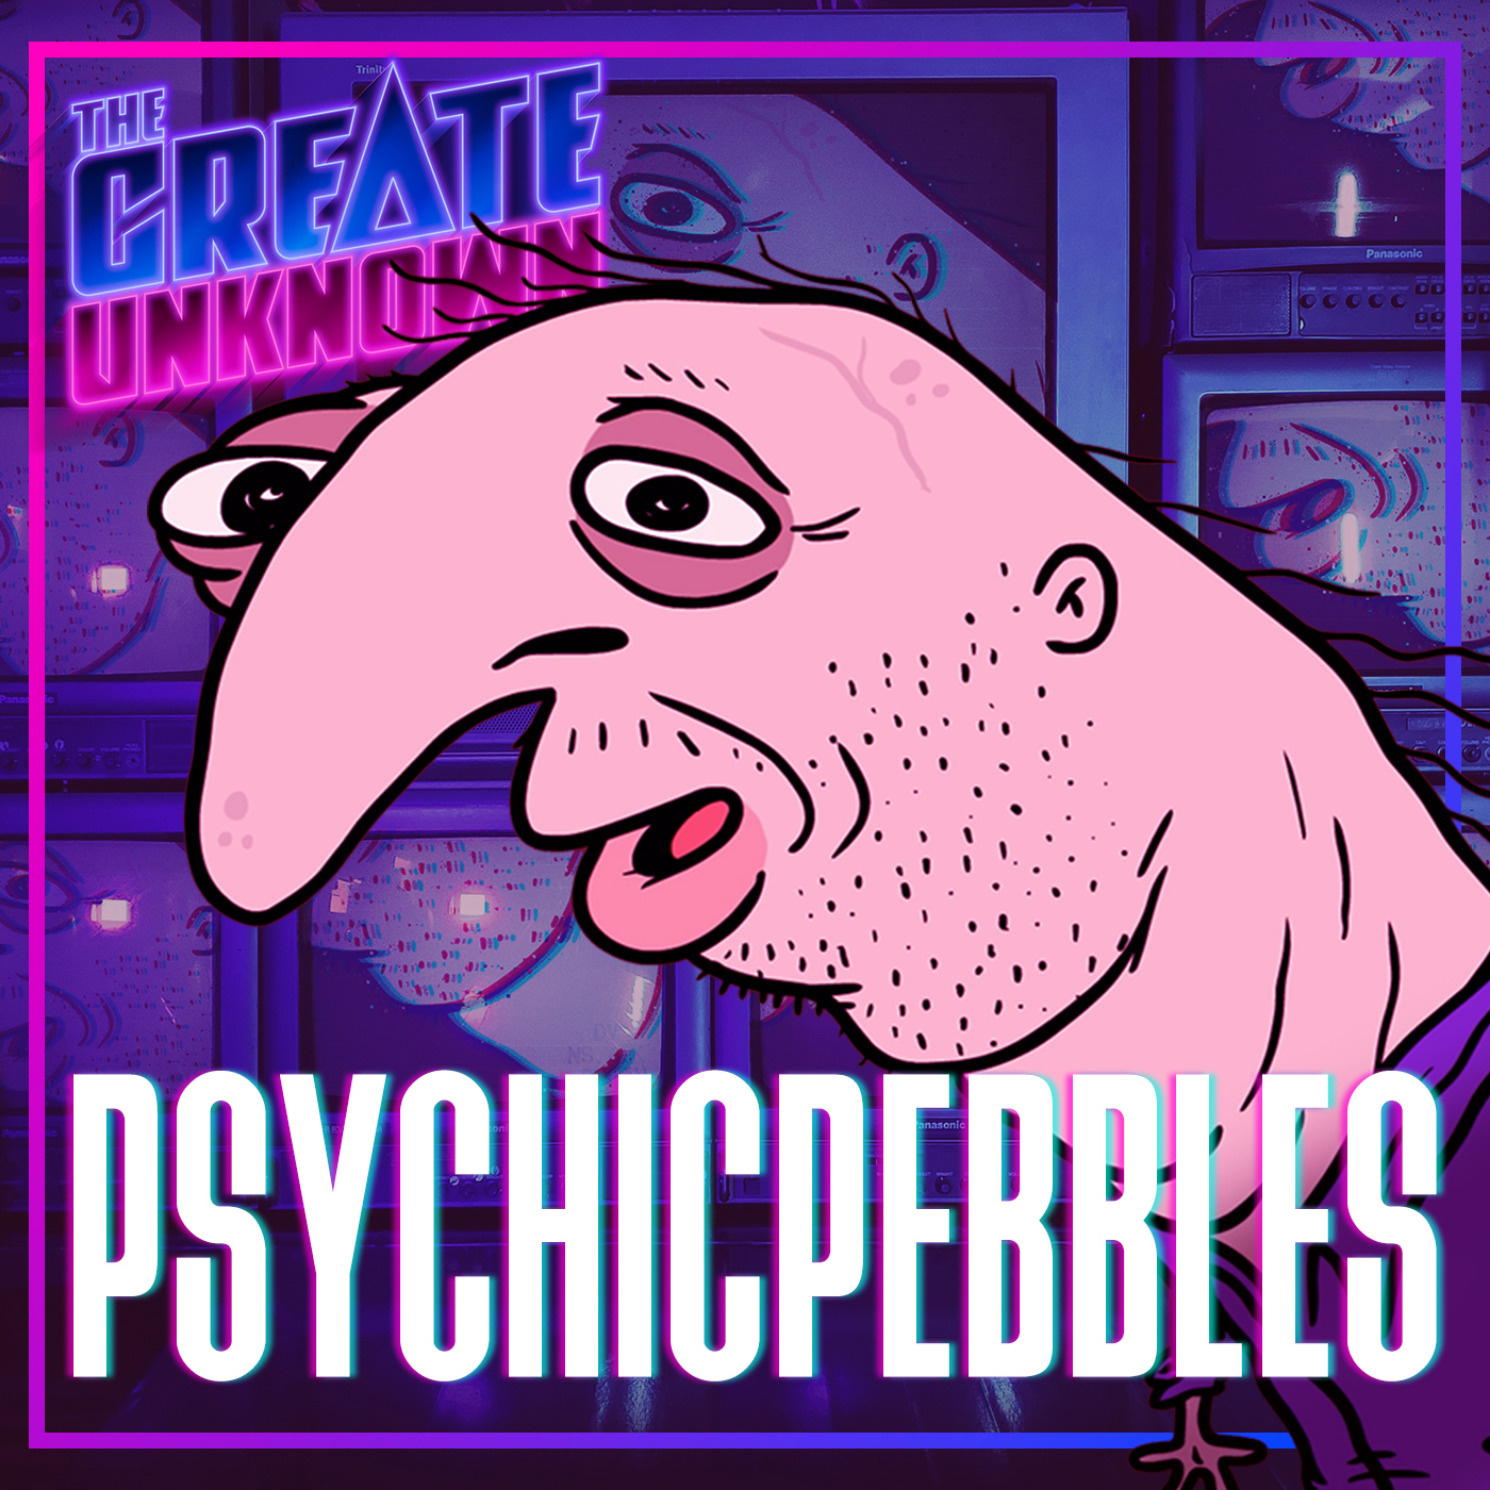 PyschicPebbles enters The Create Unknown